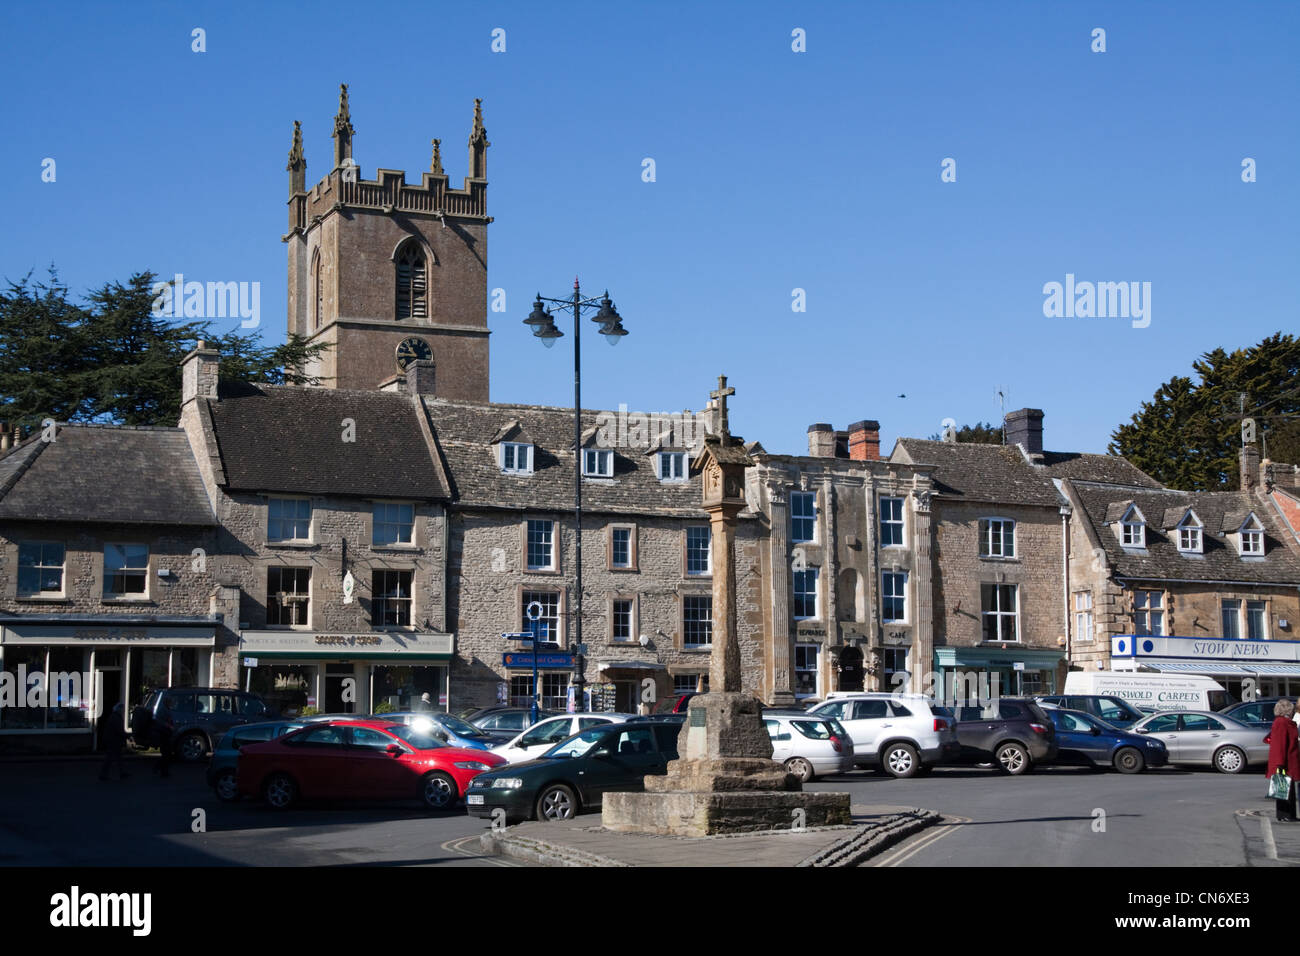 Stow on the Wold - Stock Image